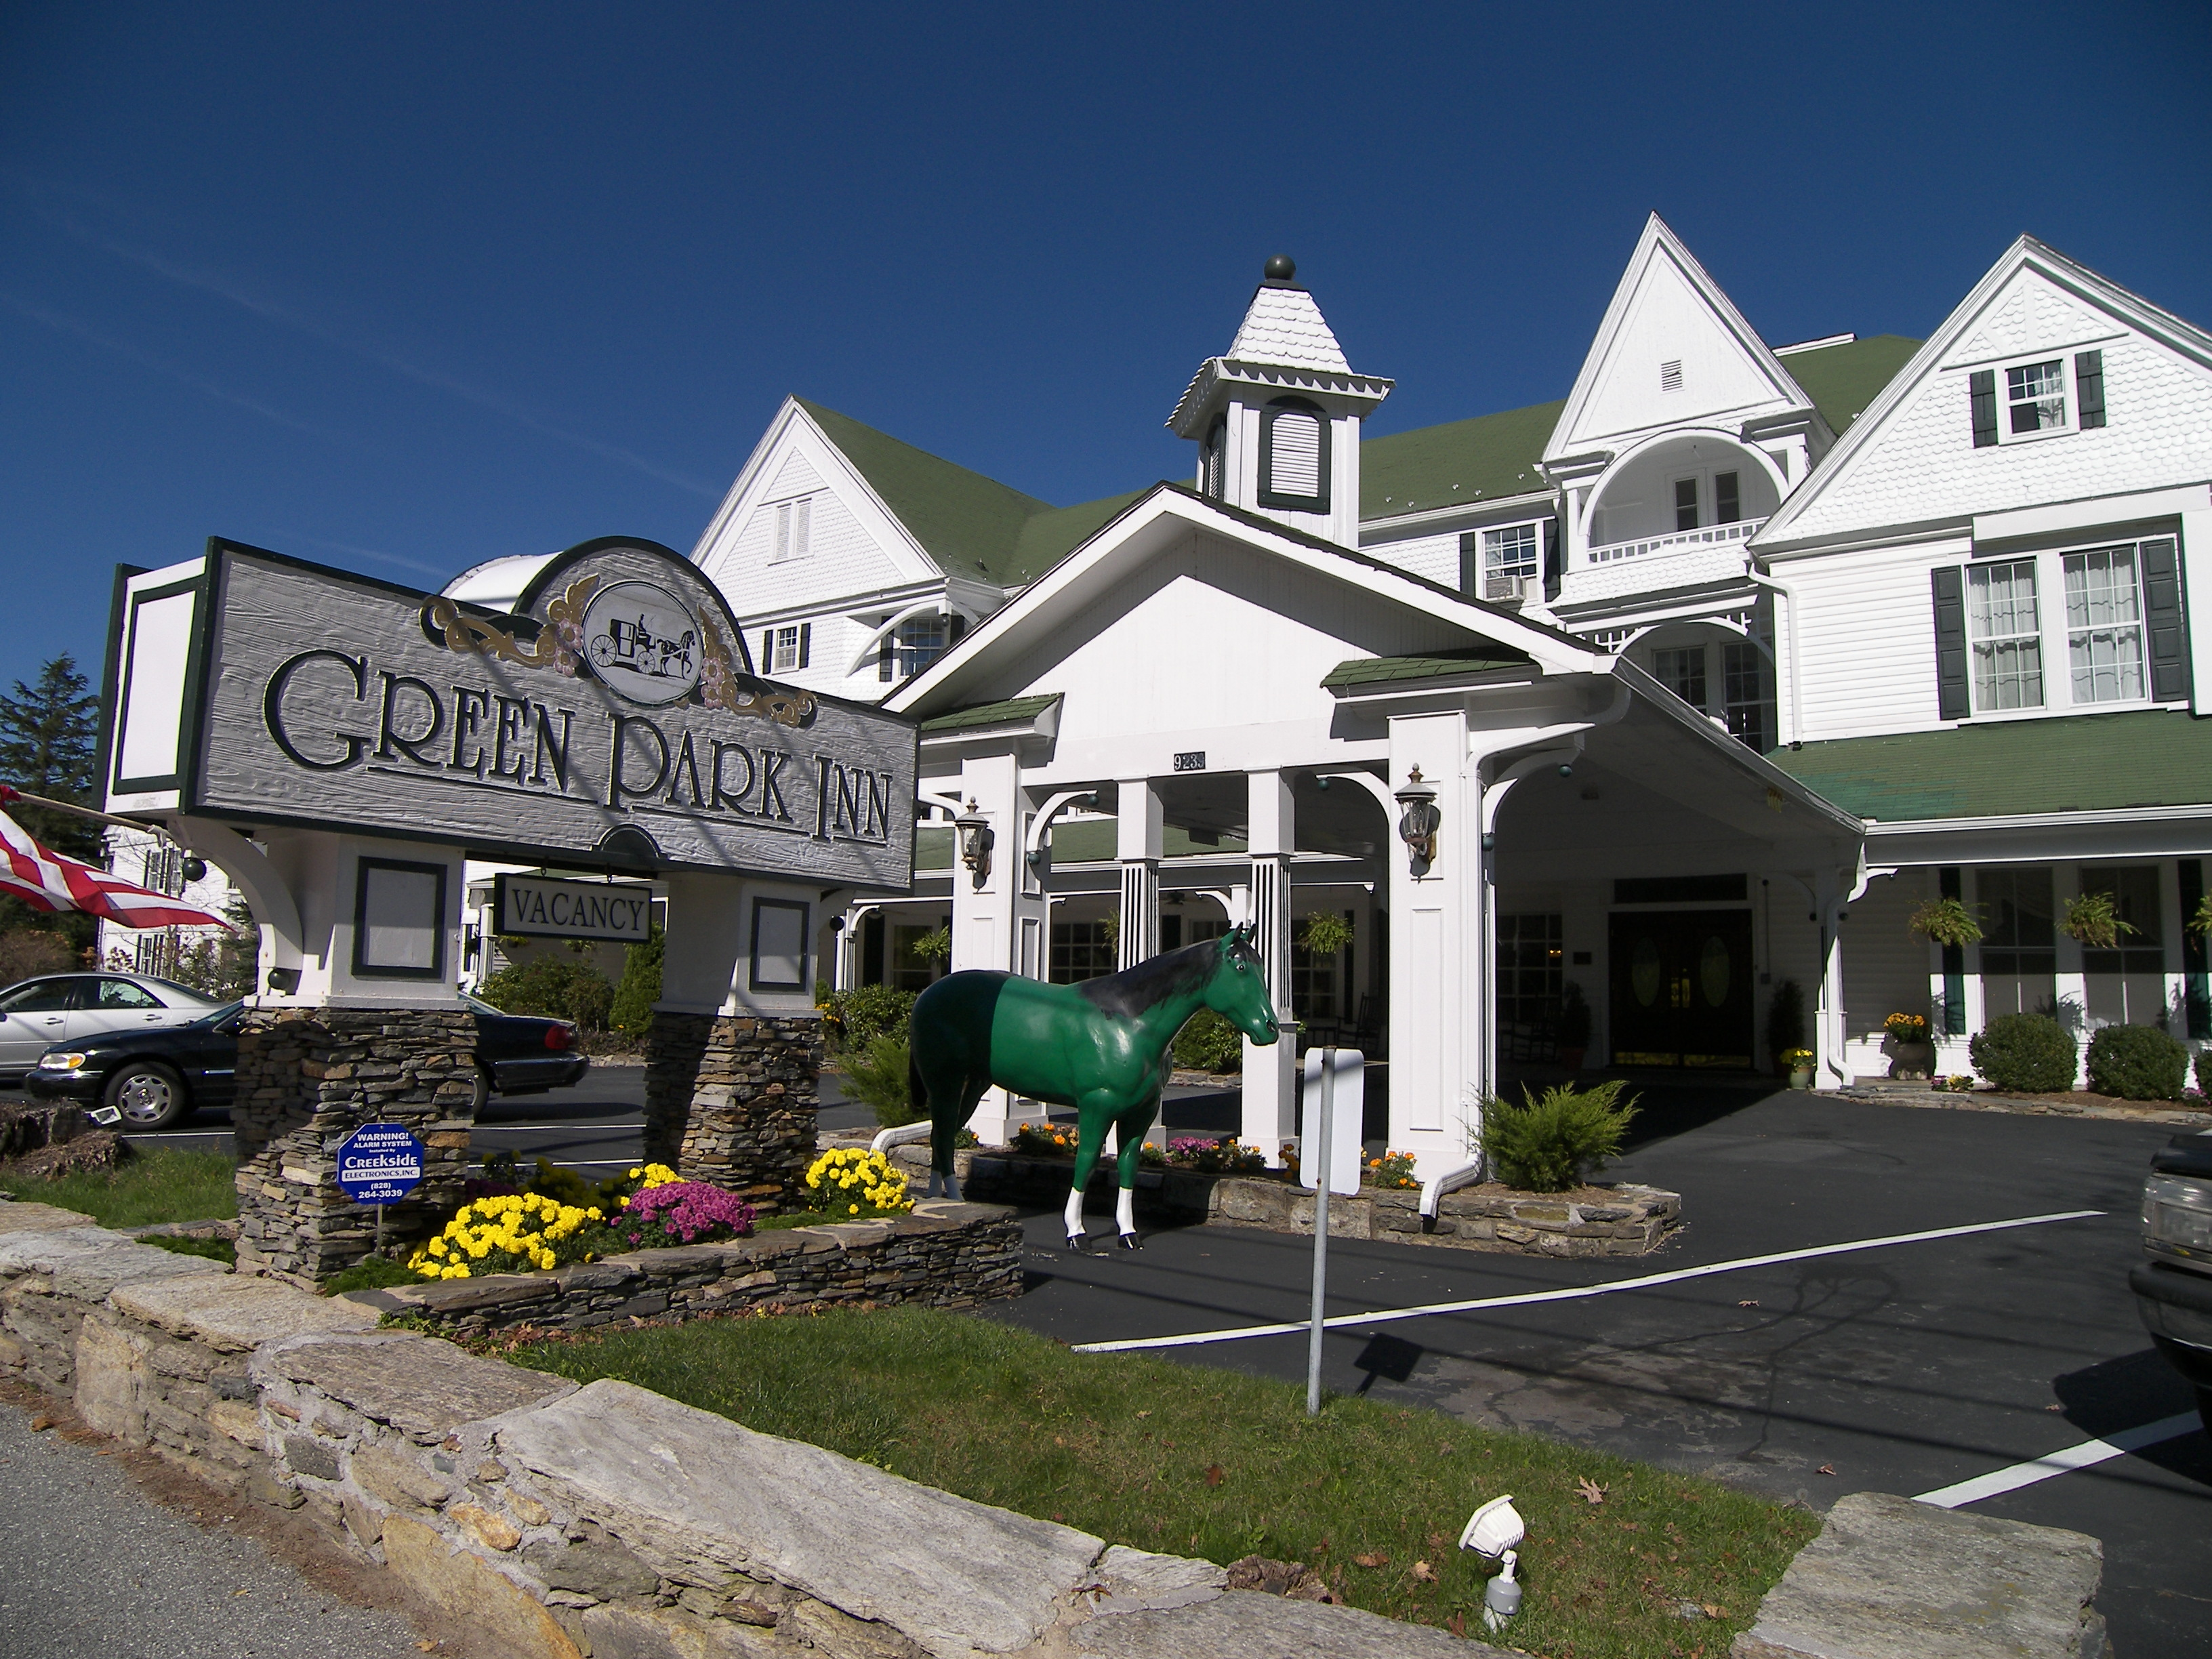 Couples Getaway at Green Park Inn